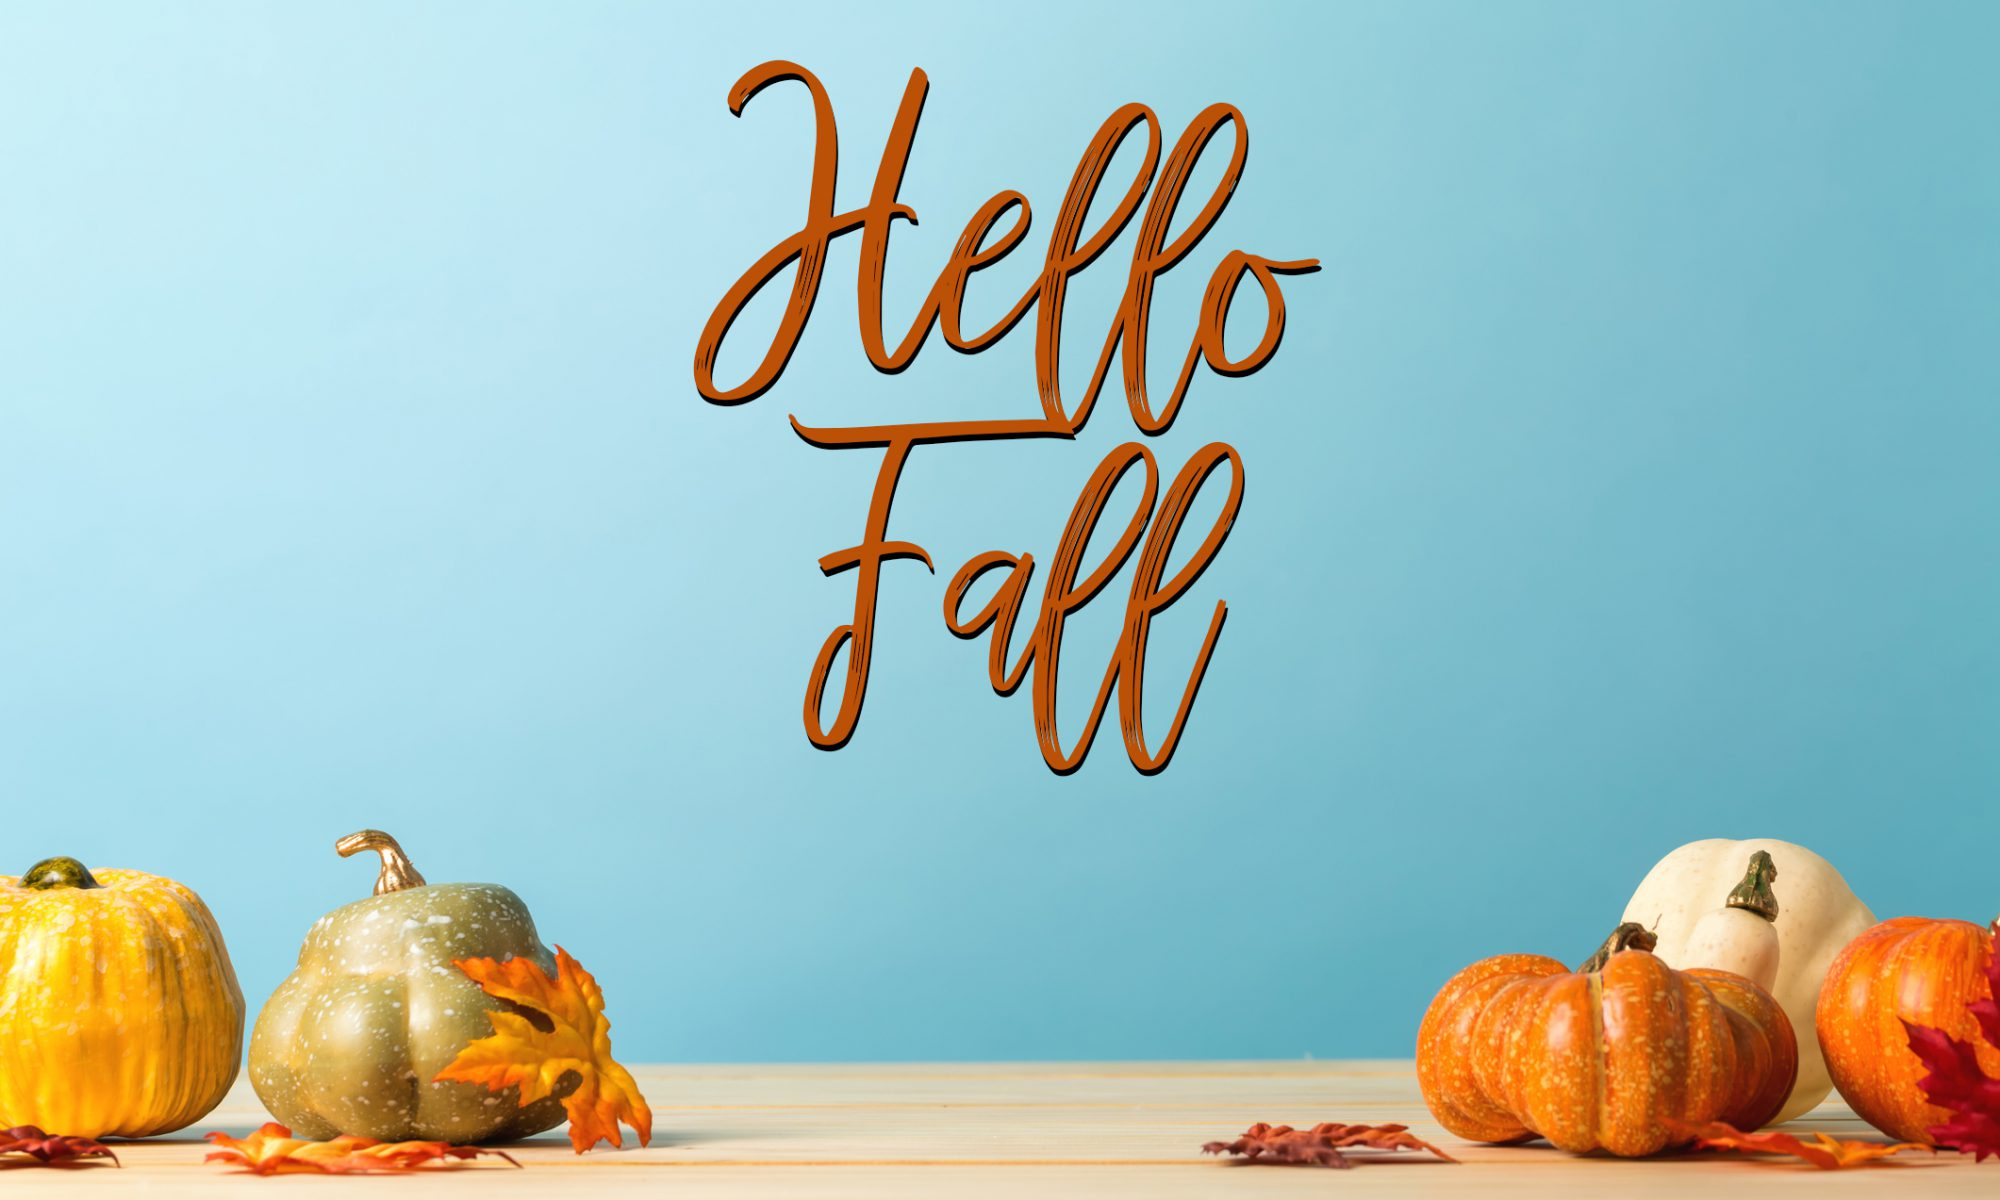 Collection of autumn pumpkins on a blue background with Hello Fall in orange and black